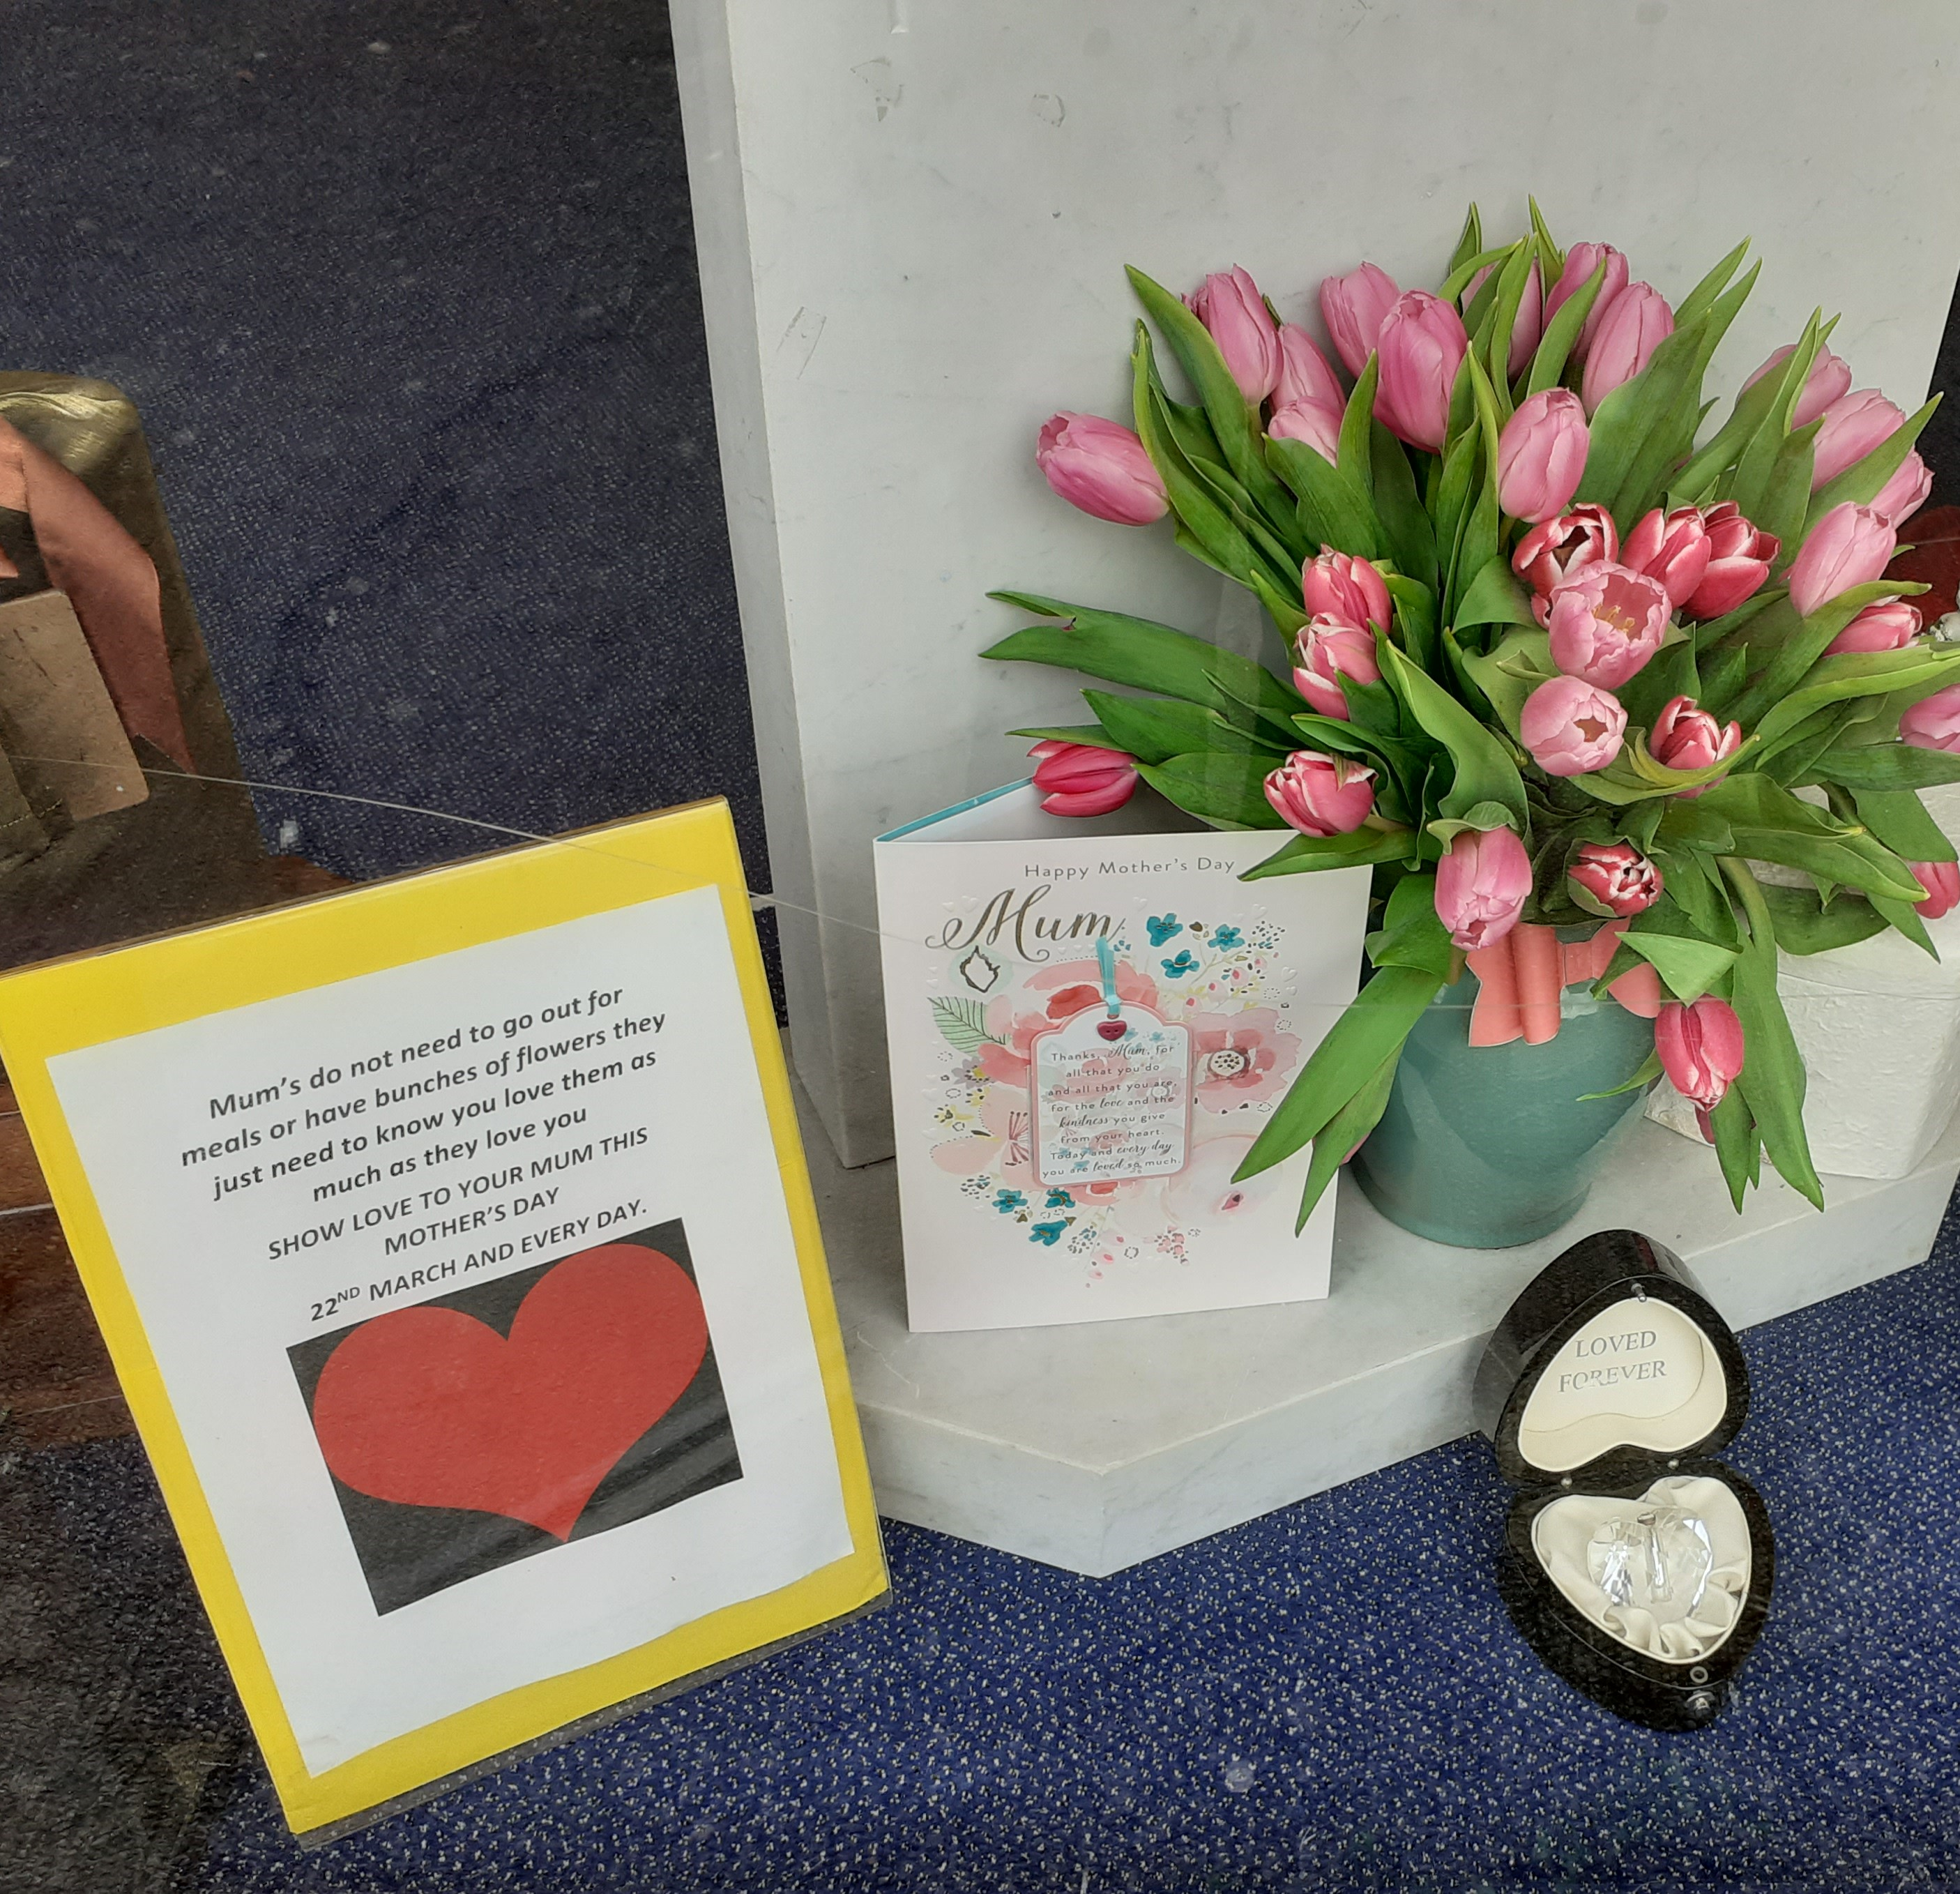 Mothers Day Display at Hanworth Branch